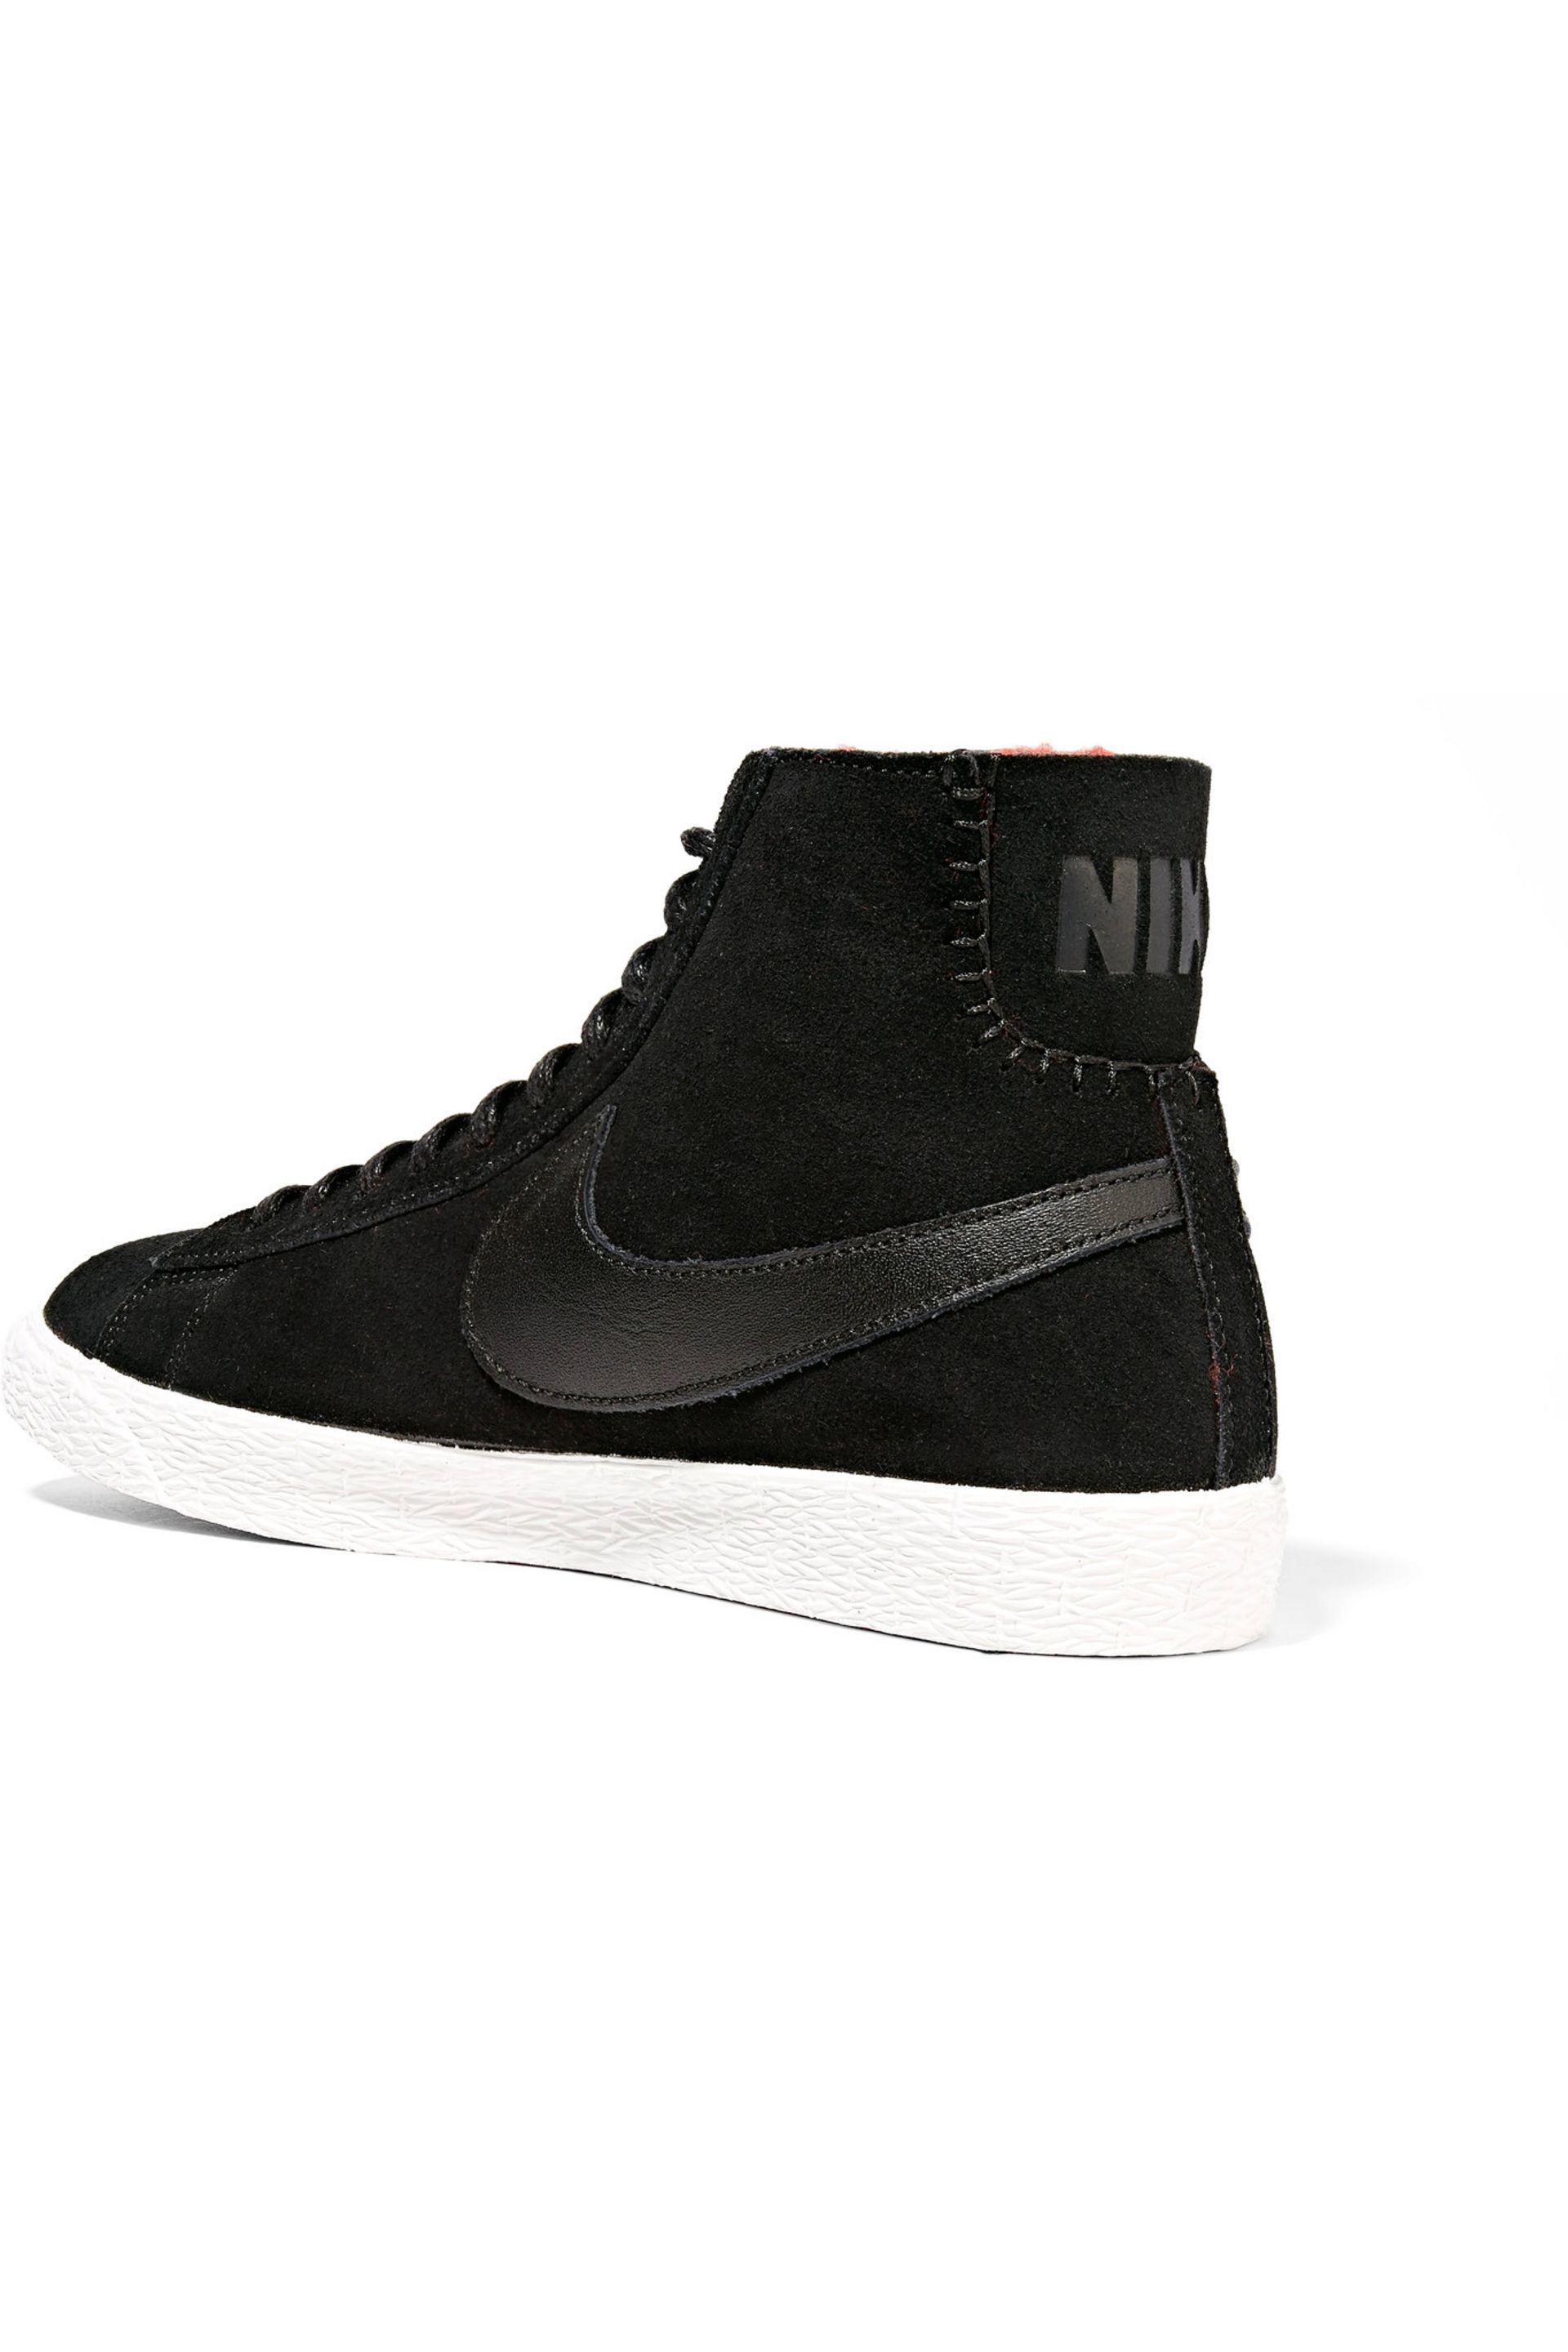 Nike - Black Blazer Mid Suede And Shearling High-top Sneakers - Lyst. View  Fullscreen